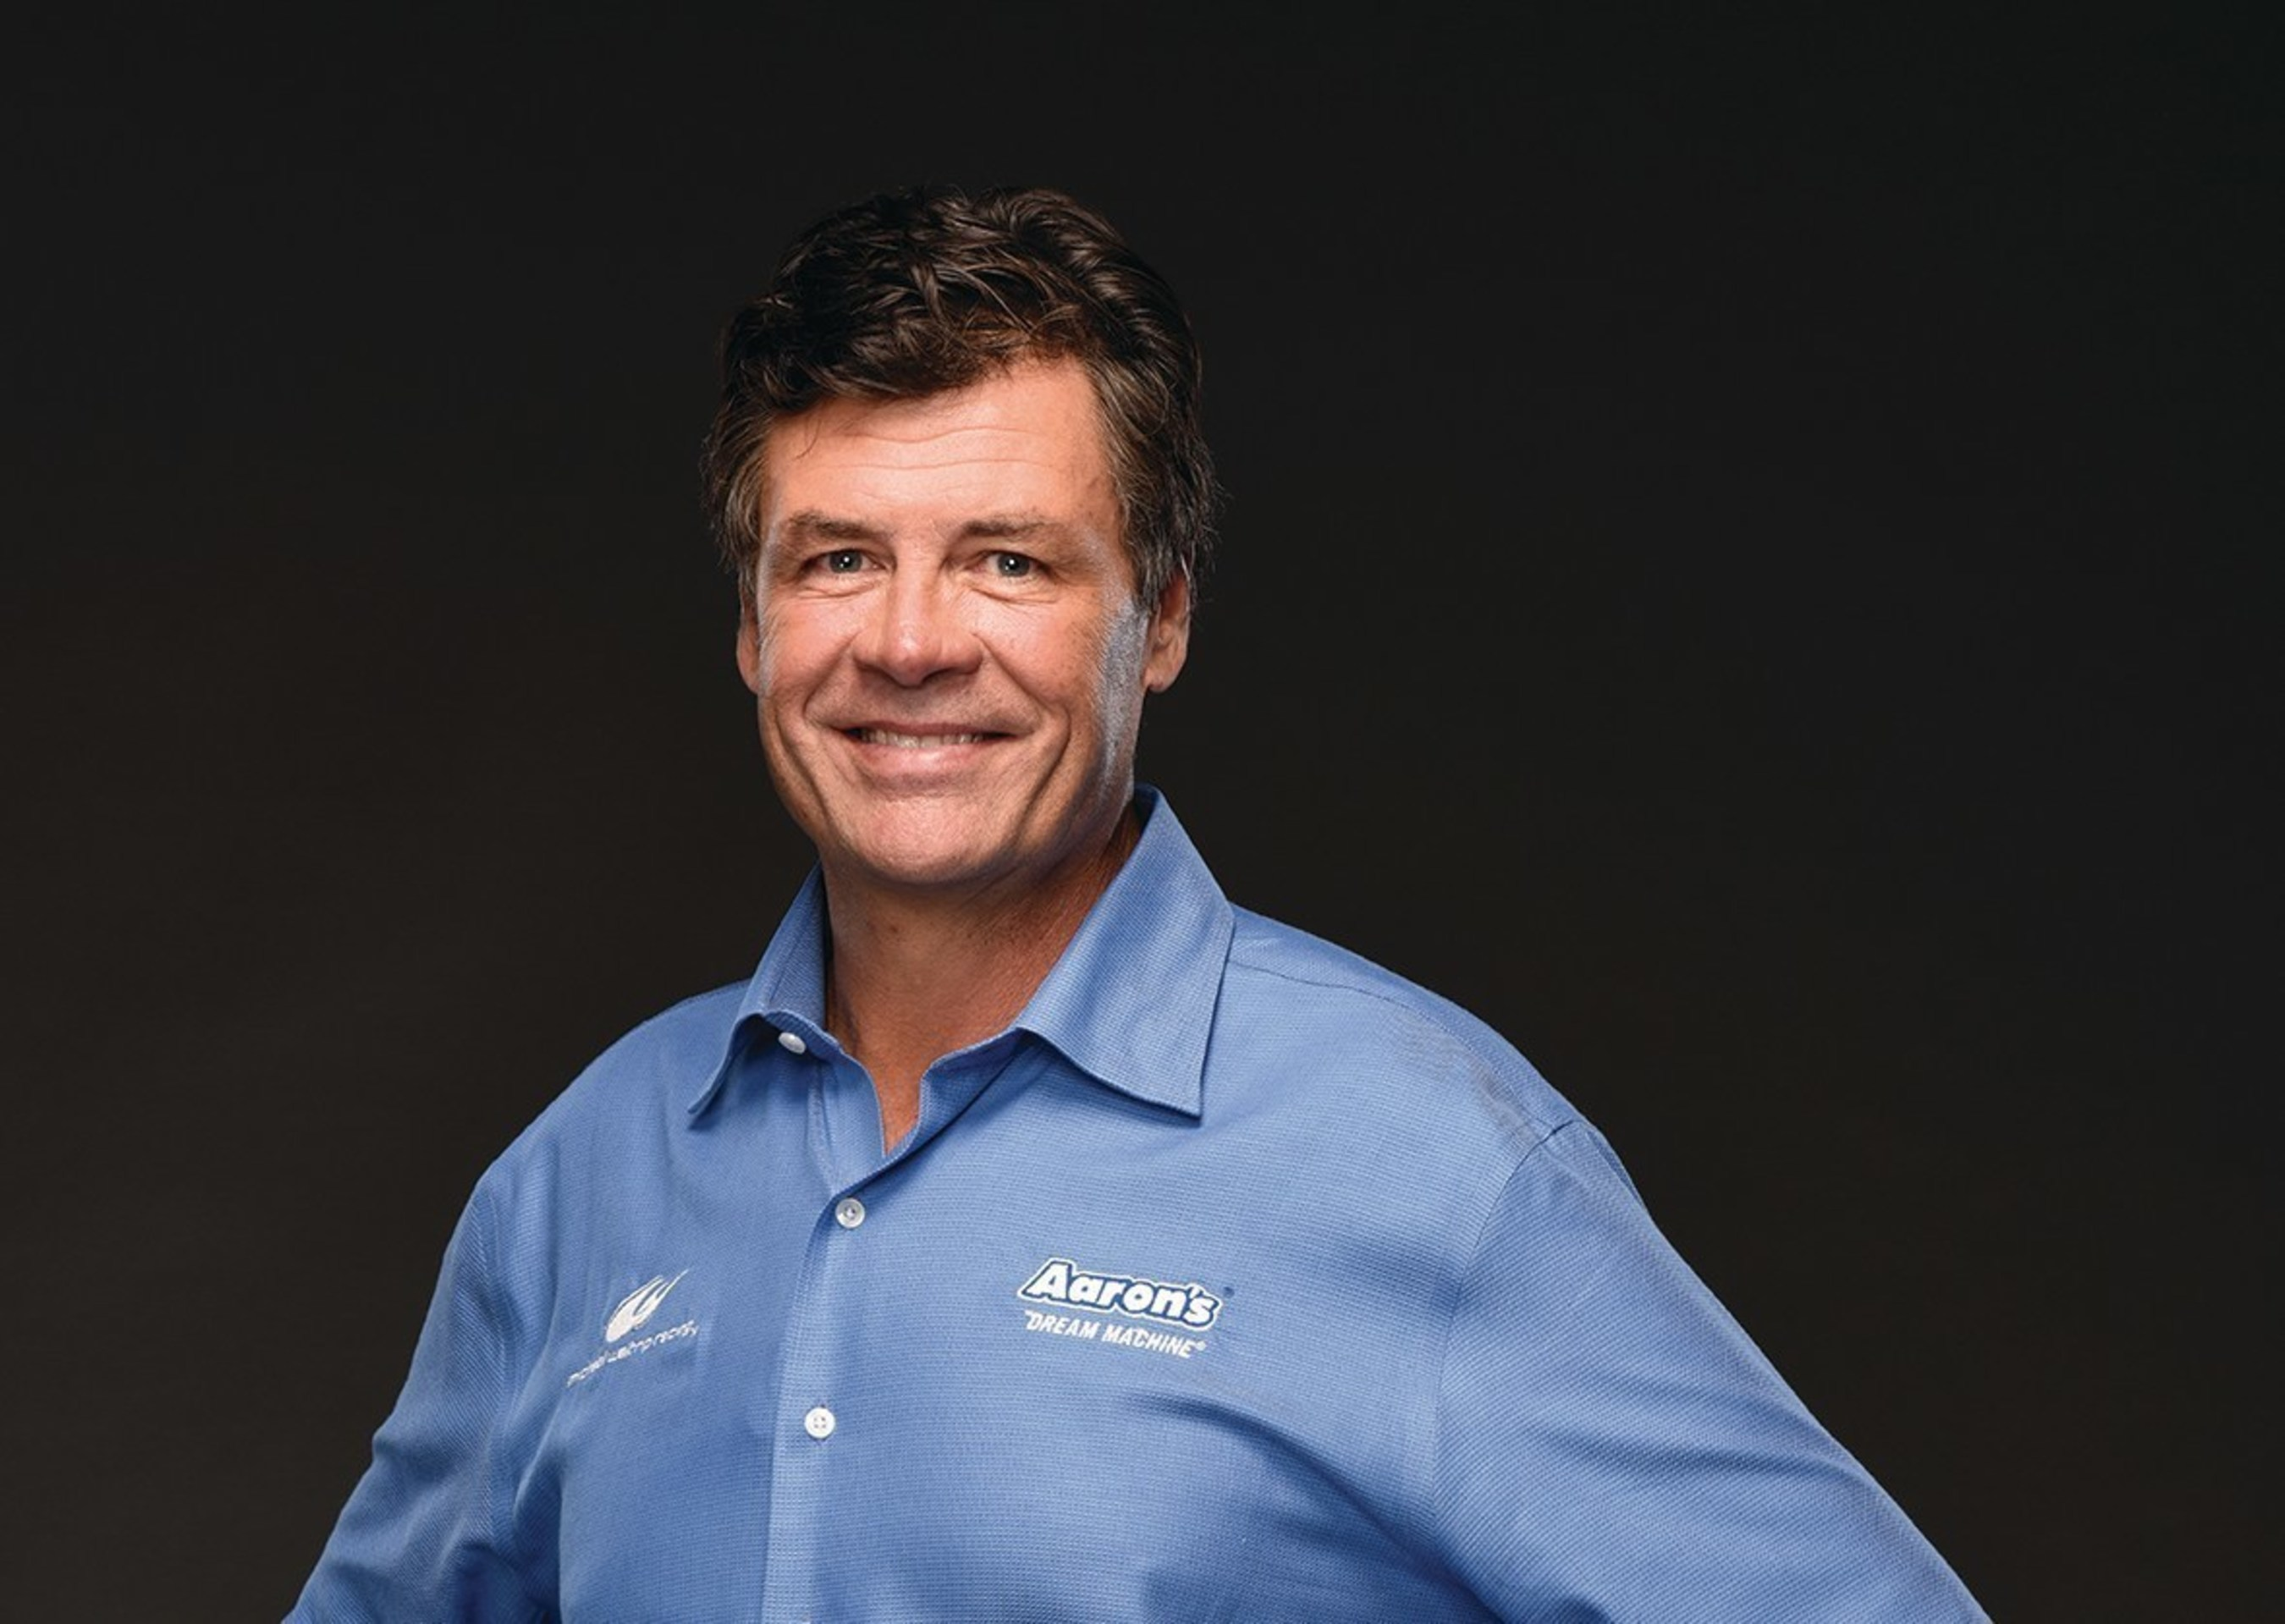 Aaron's Announces Chance to Win Family Vacation with Racing Legend Michael Waltrip